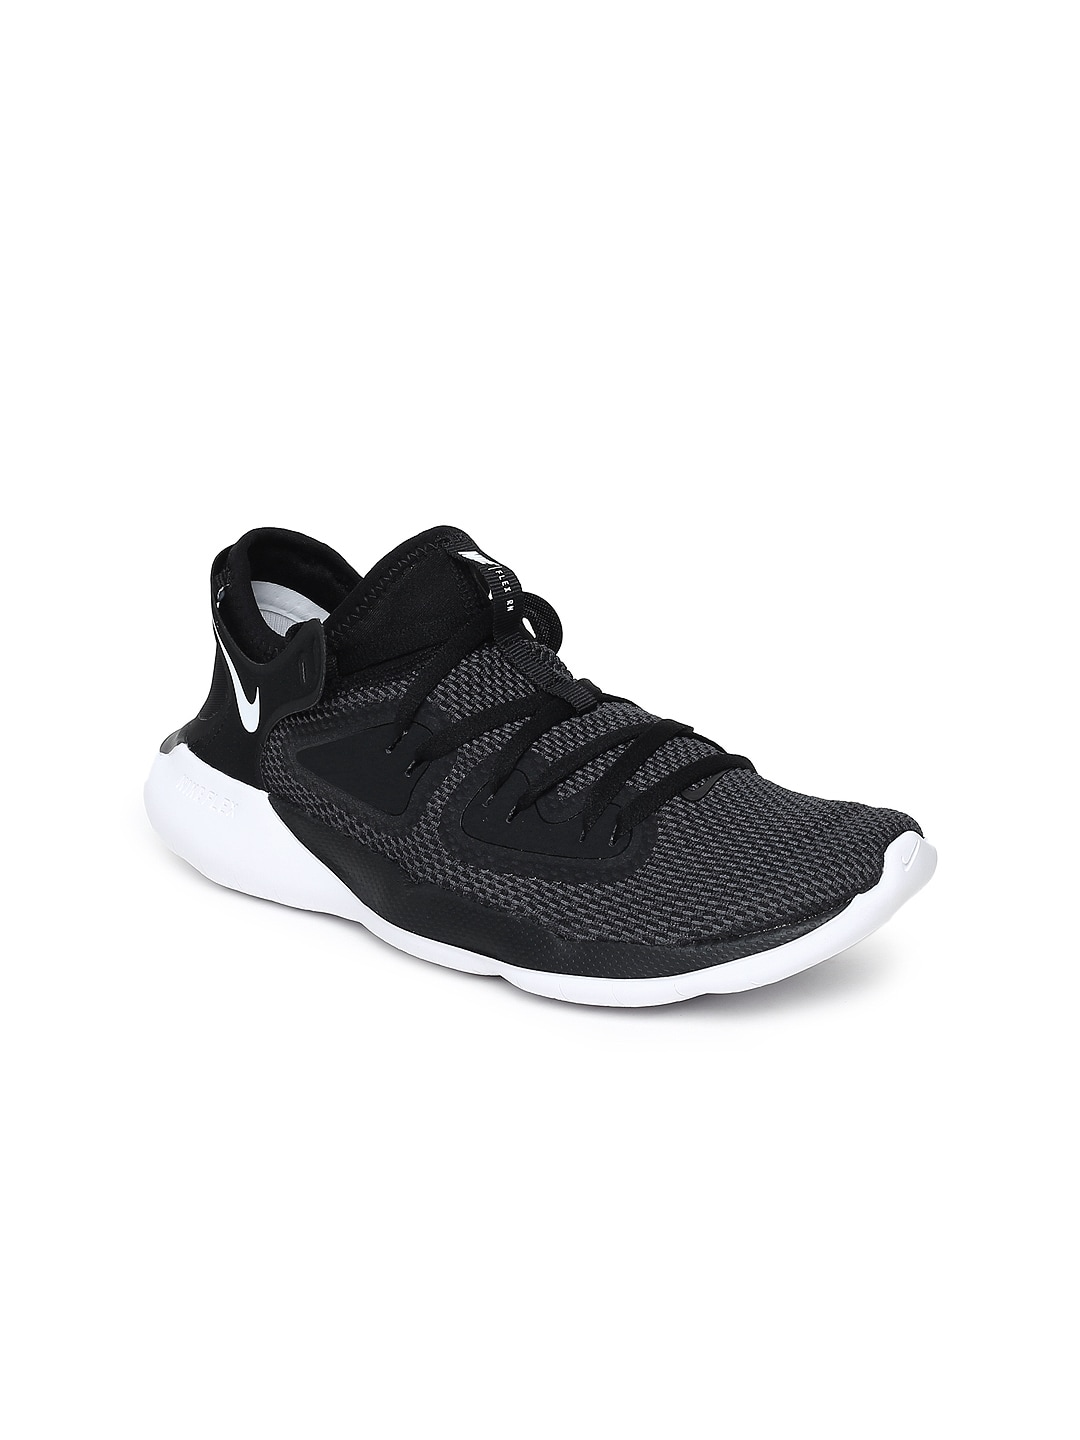 timeless design bd8d6 928ef Nike Shoes - Buy Nike Shoes for Men, Women   Kids Online   Myntra